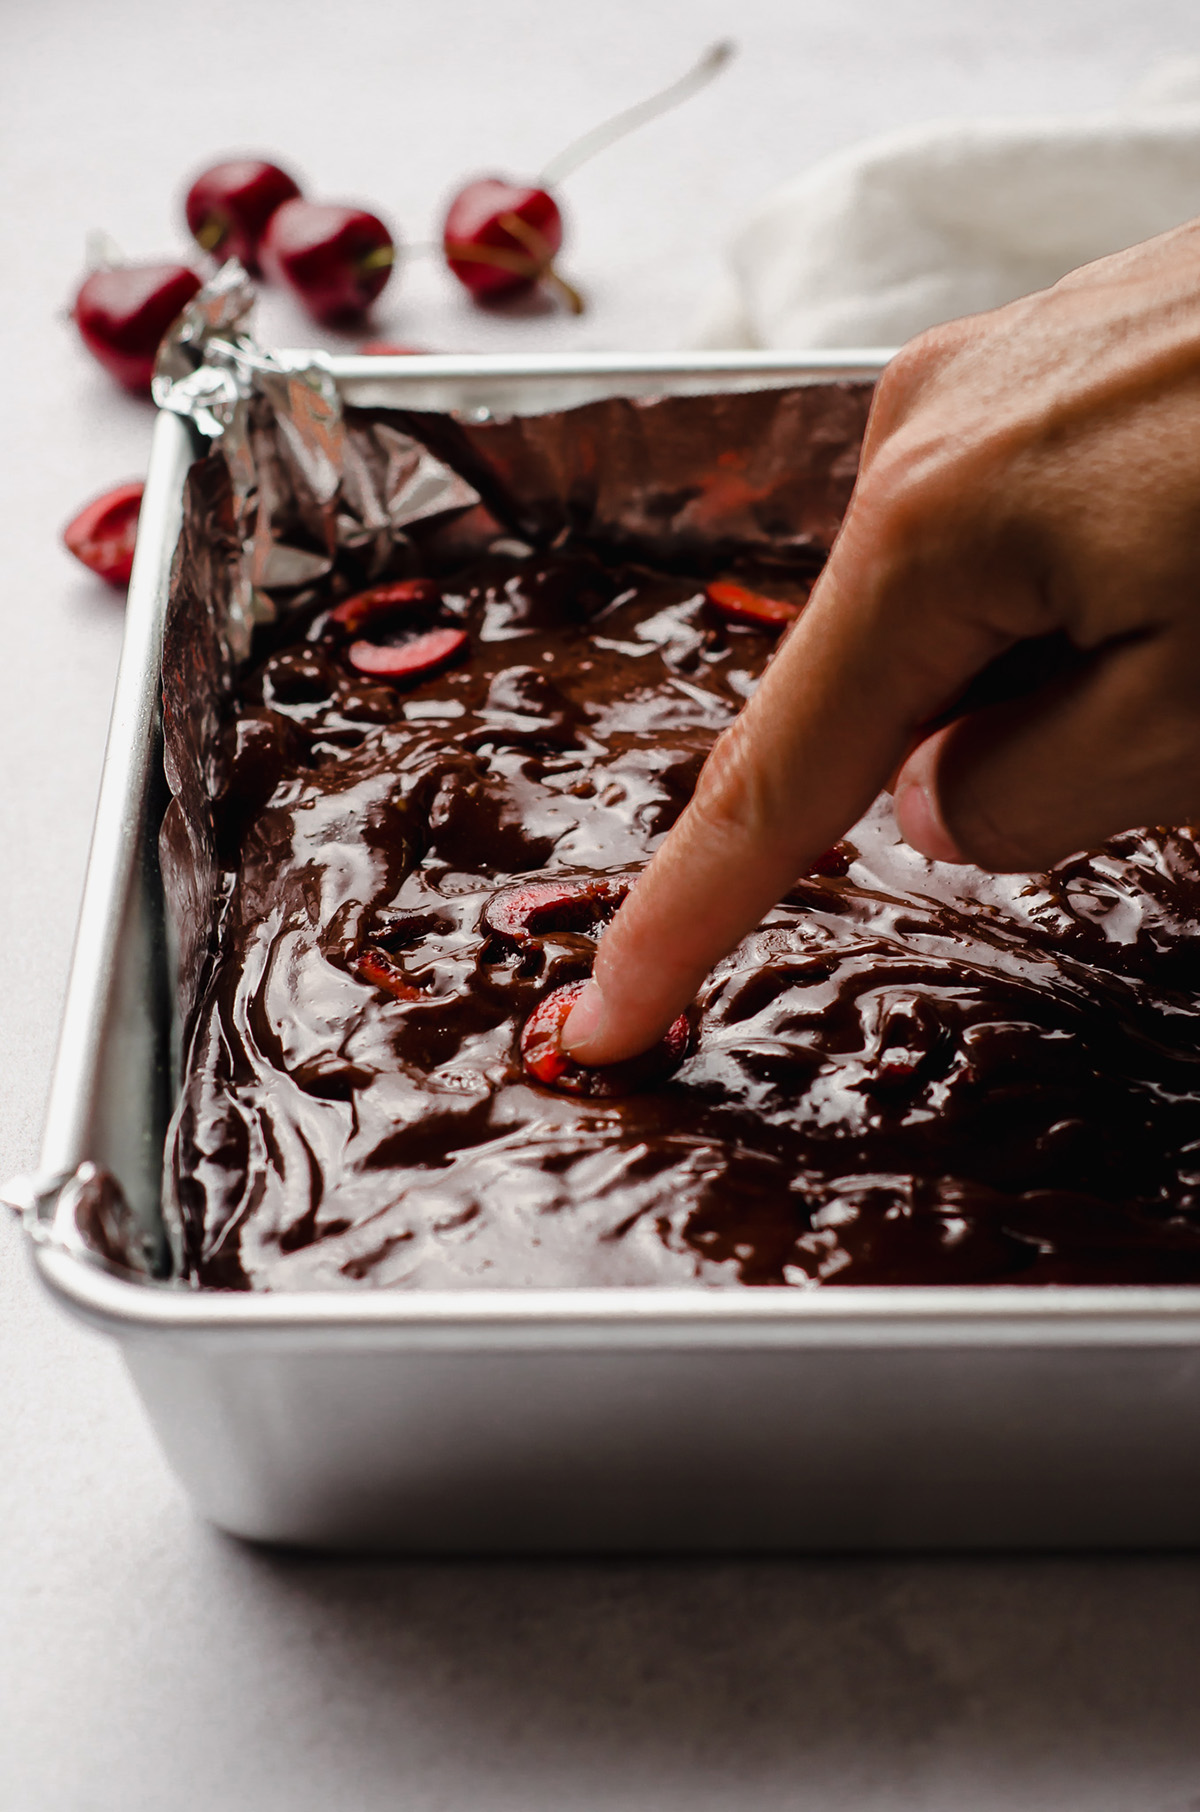 pressing a cherry into cherry brownie batter